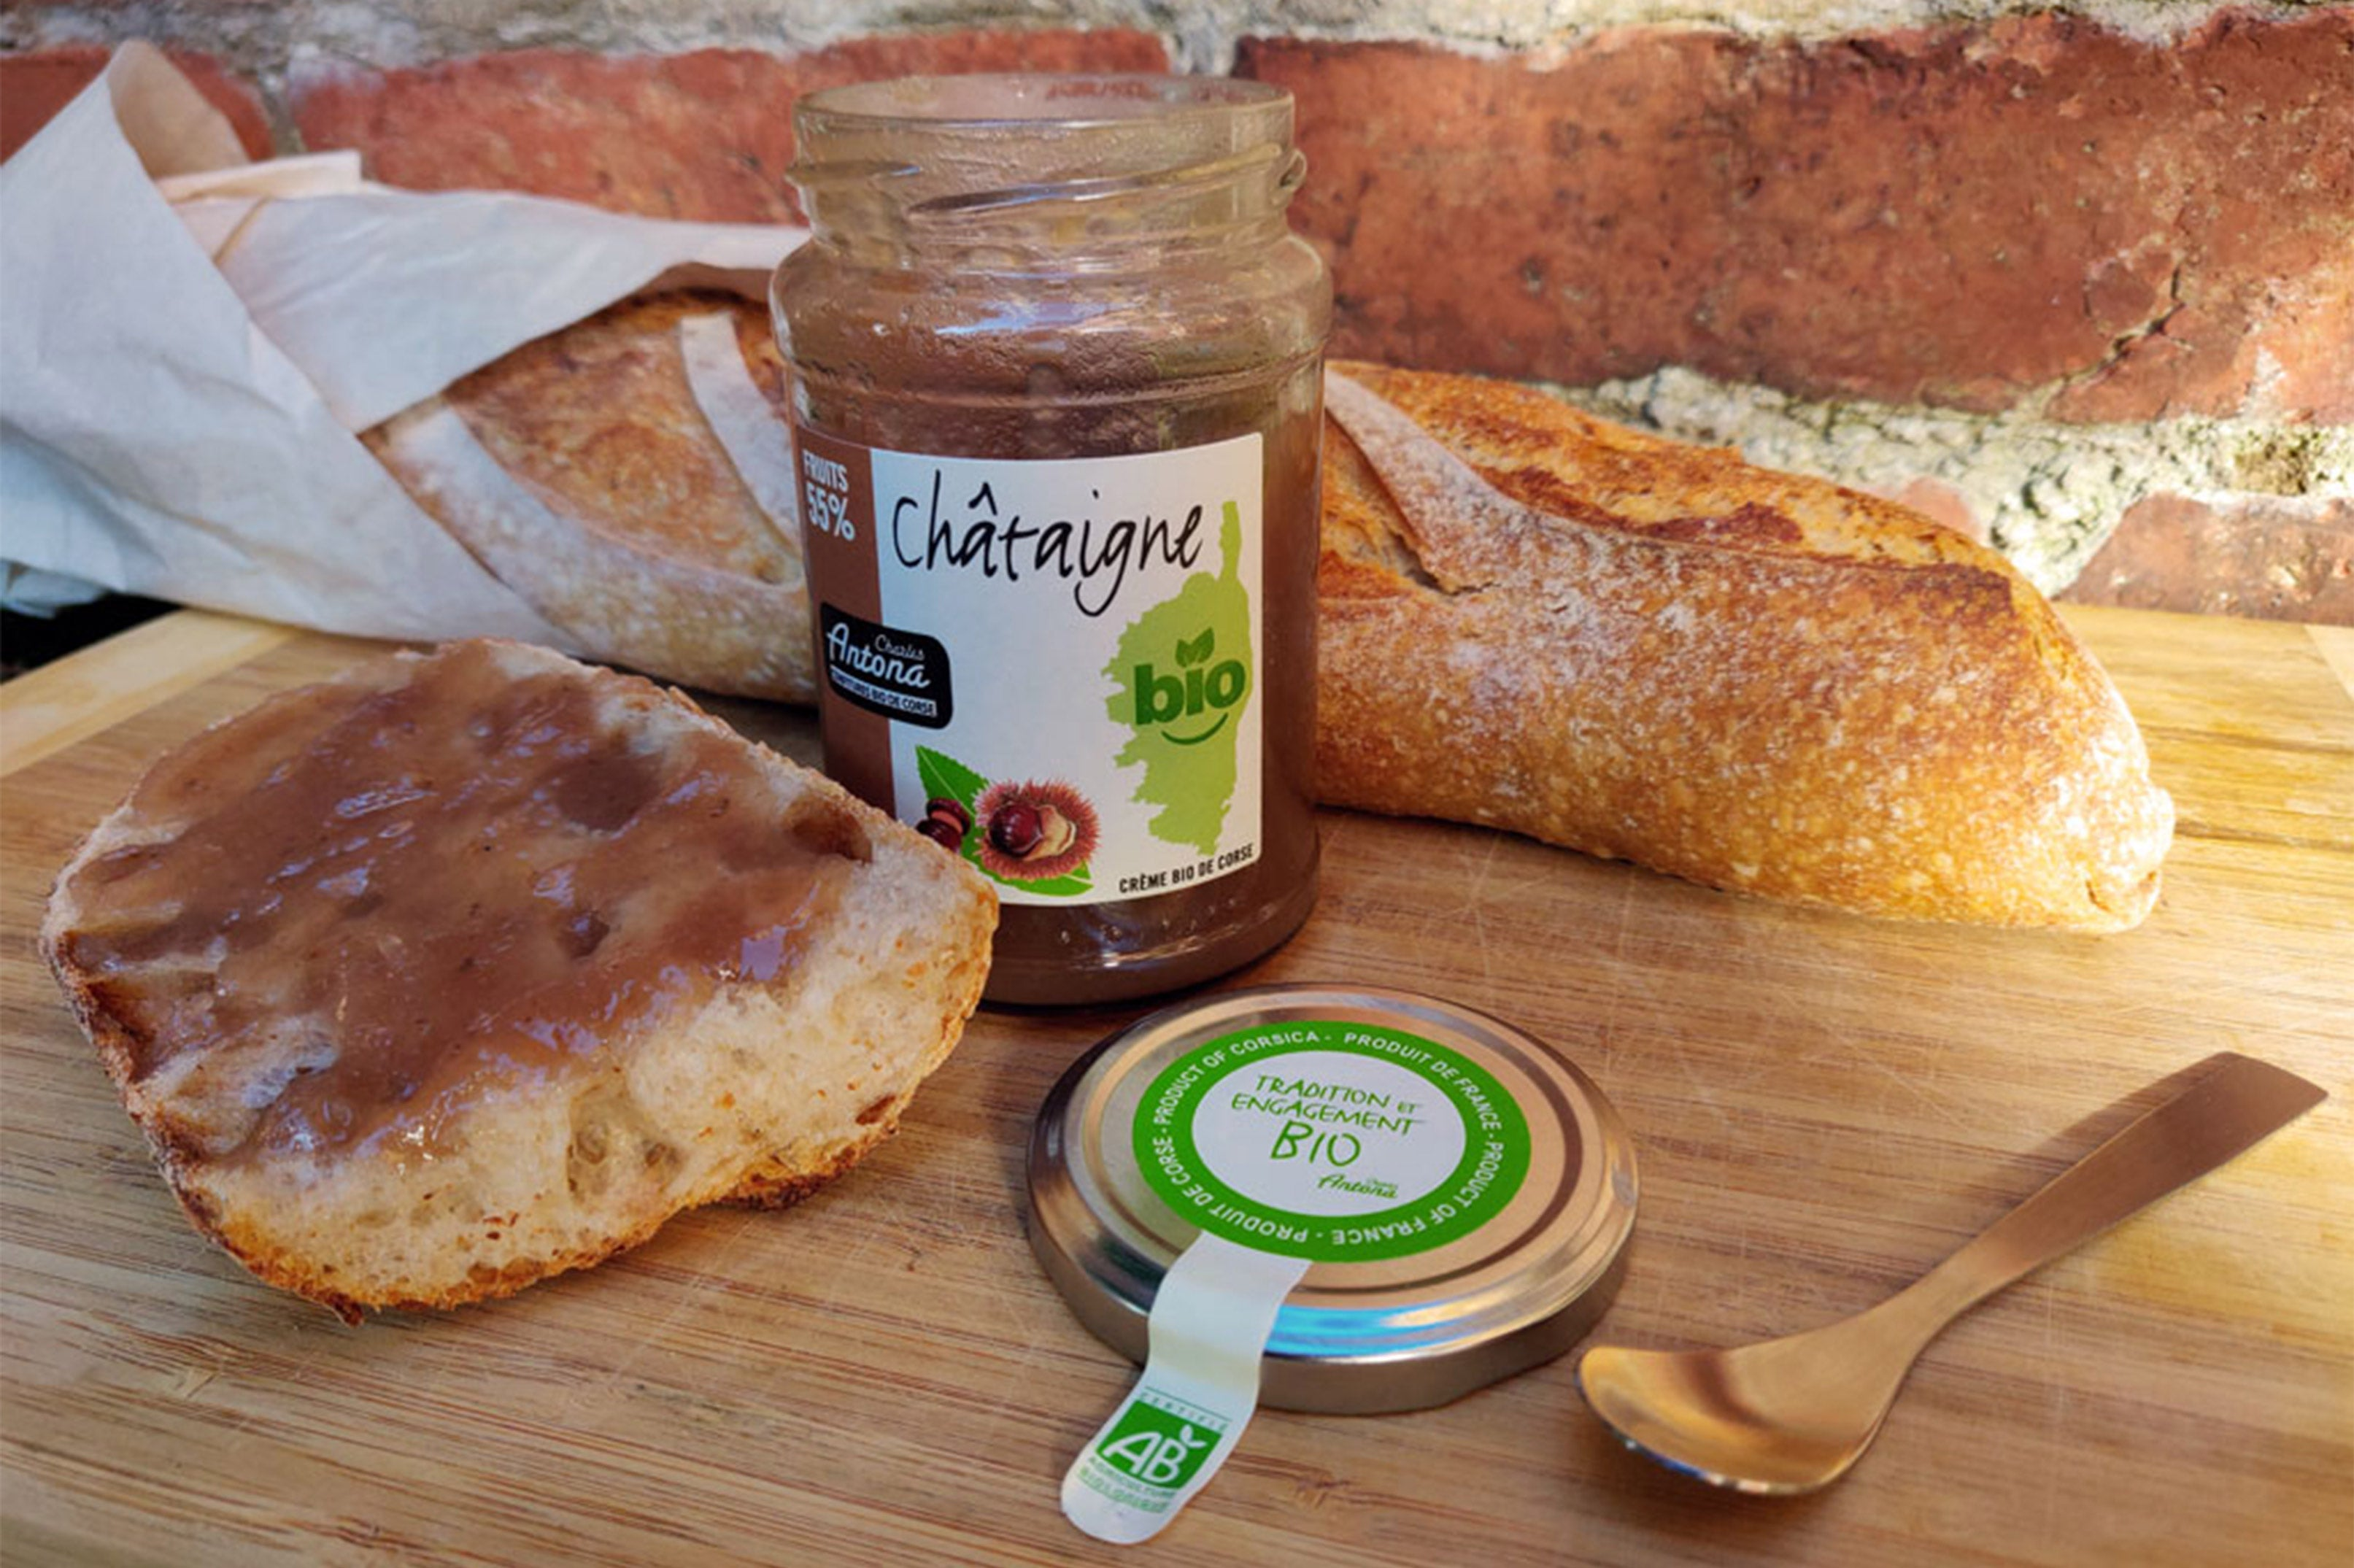 Organic Chestnut Spread Jam, made by the Corsica based Charles Antona.